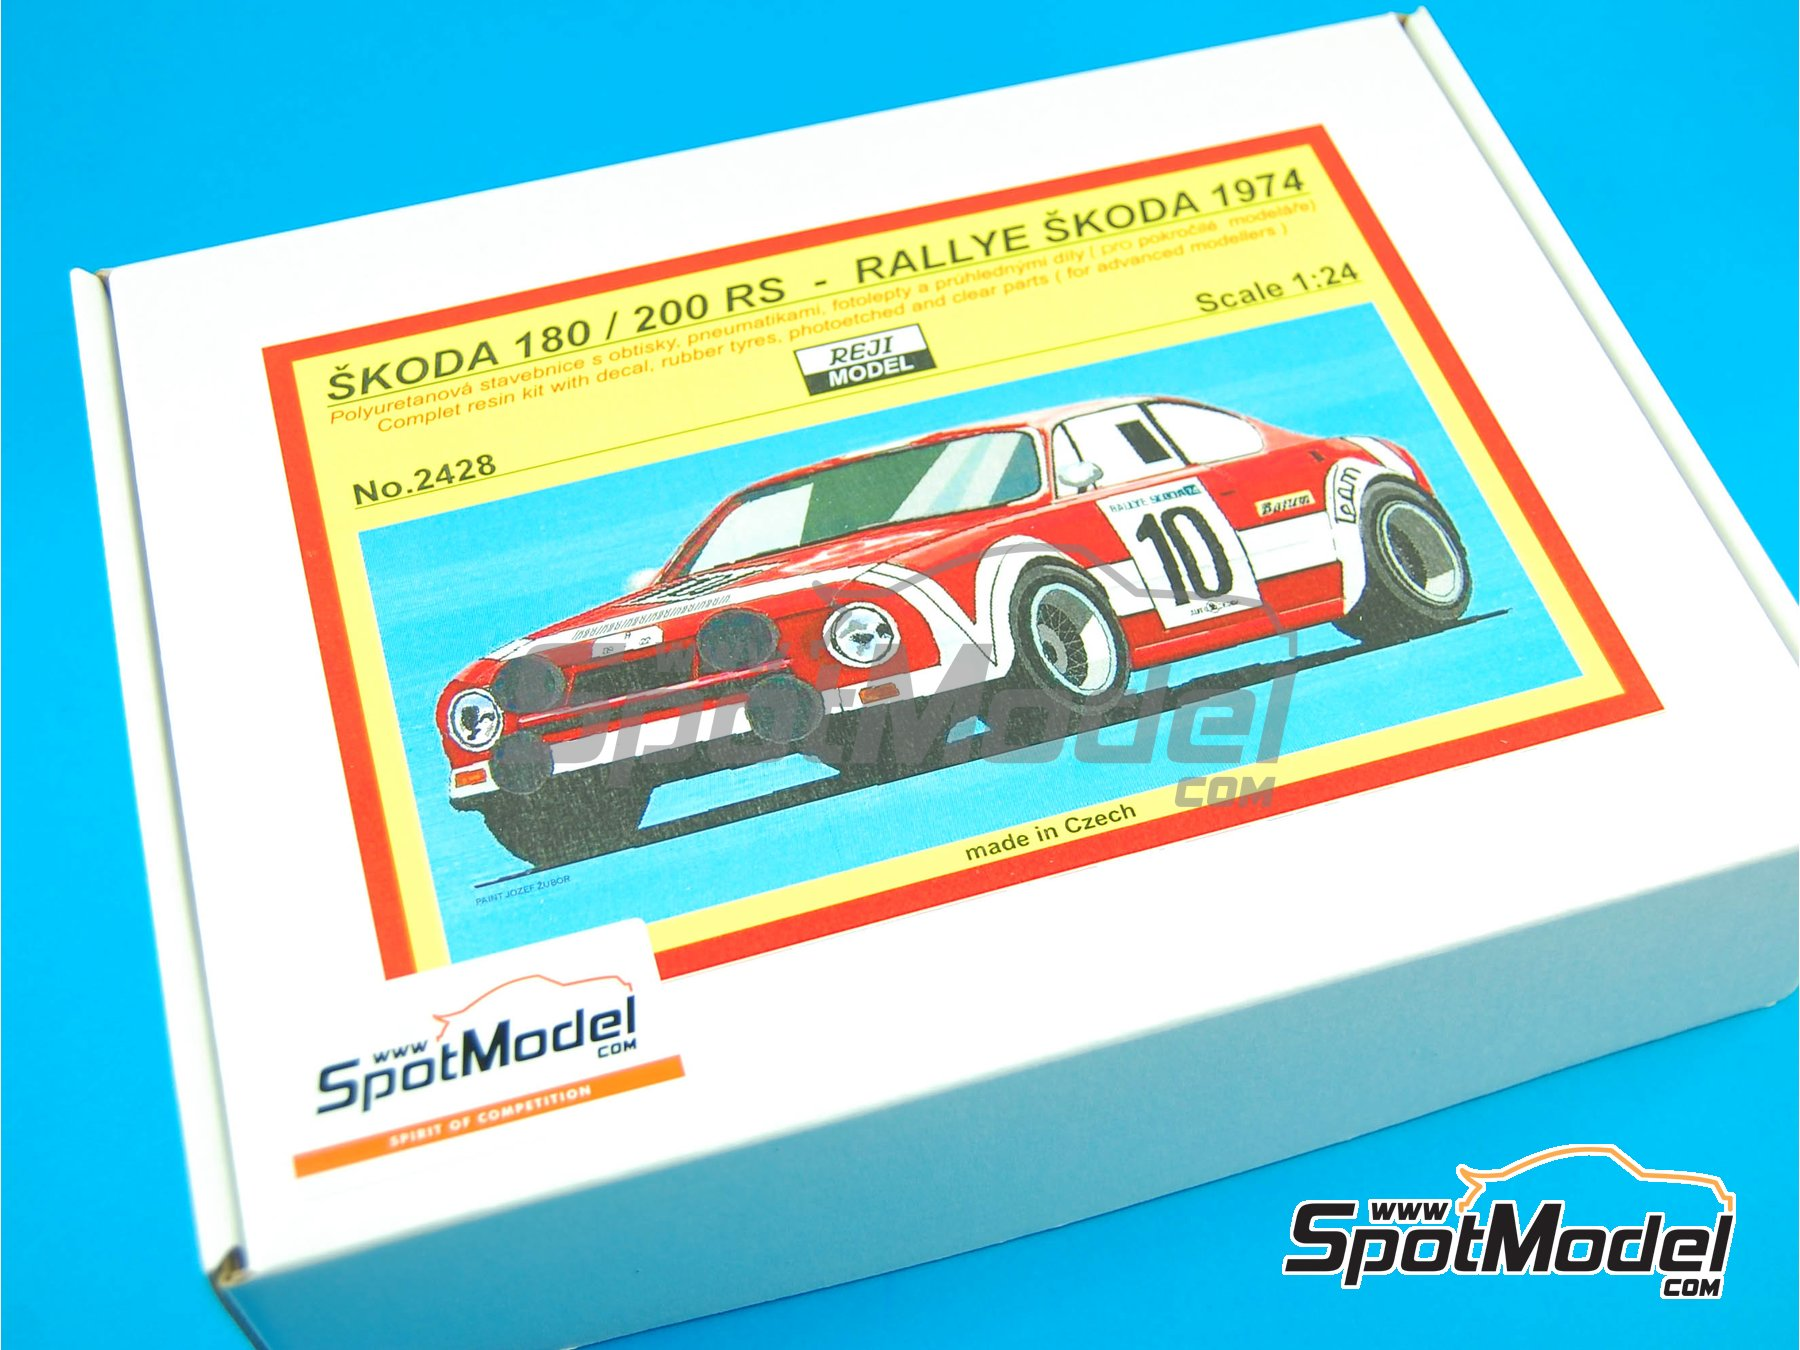 Skoda 180 / 200 RS - Skoda Rally 1974 | Car kit in 1/24 scale manufactured by Reji Model (ref. REJI-2428) image